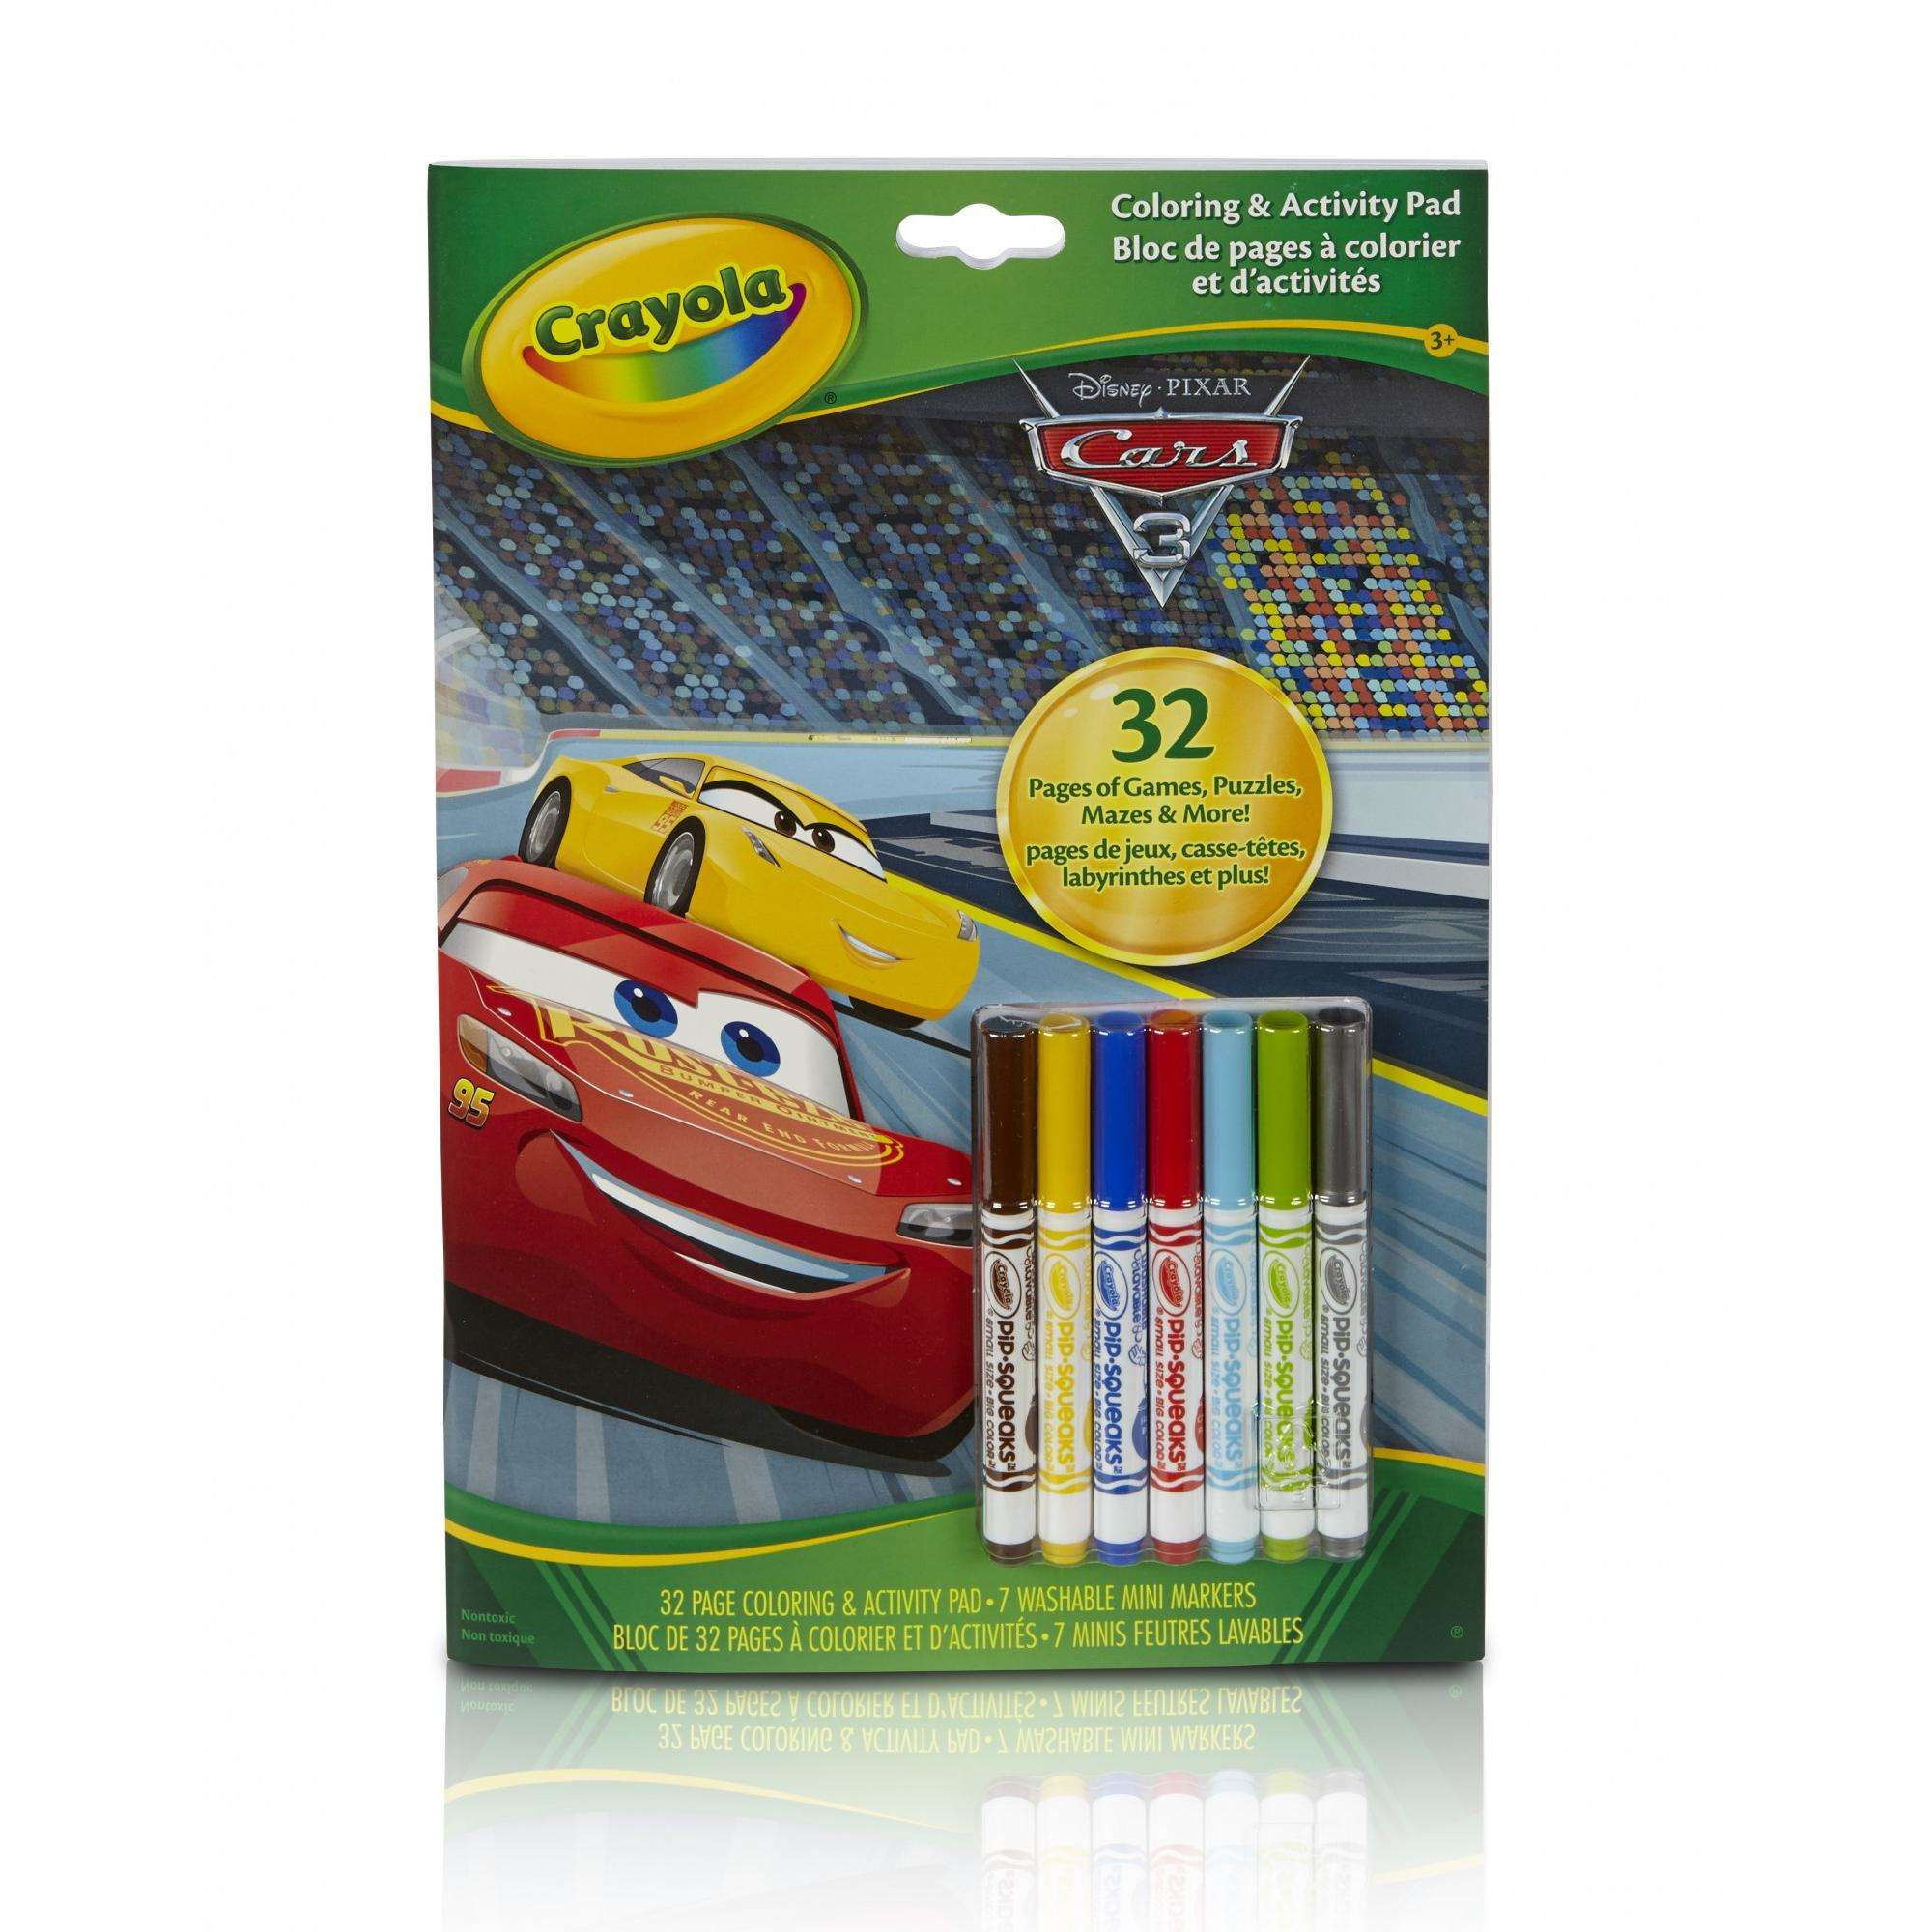 Crayola Cars Coloring & Activity Book, 32 Pages, 7 Mini Markers by Crayola